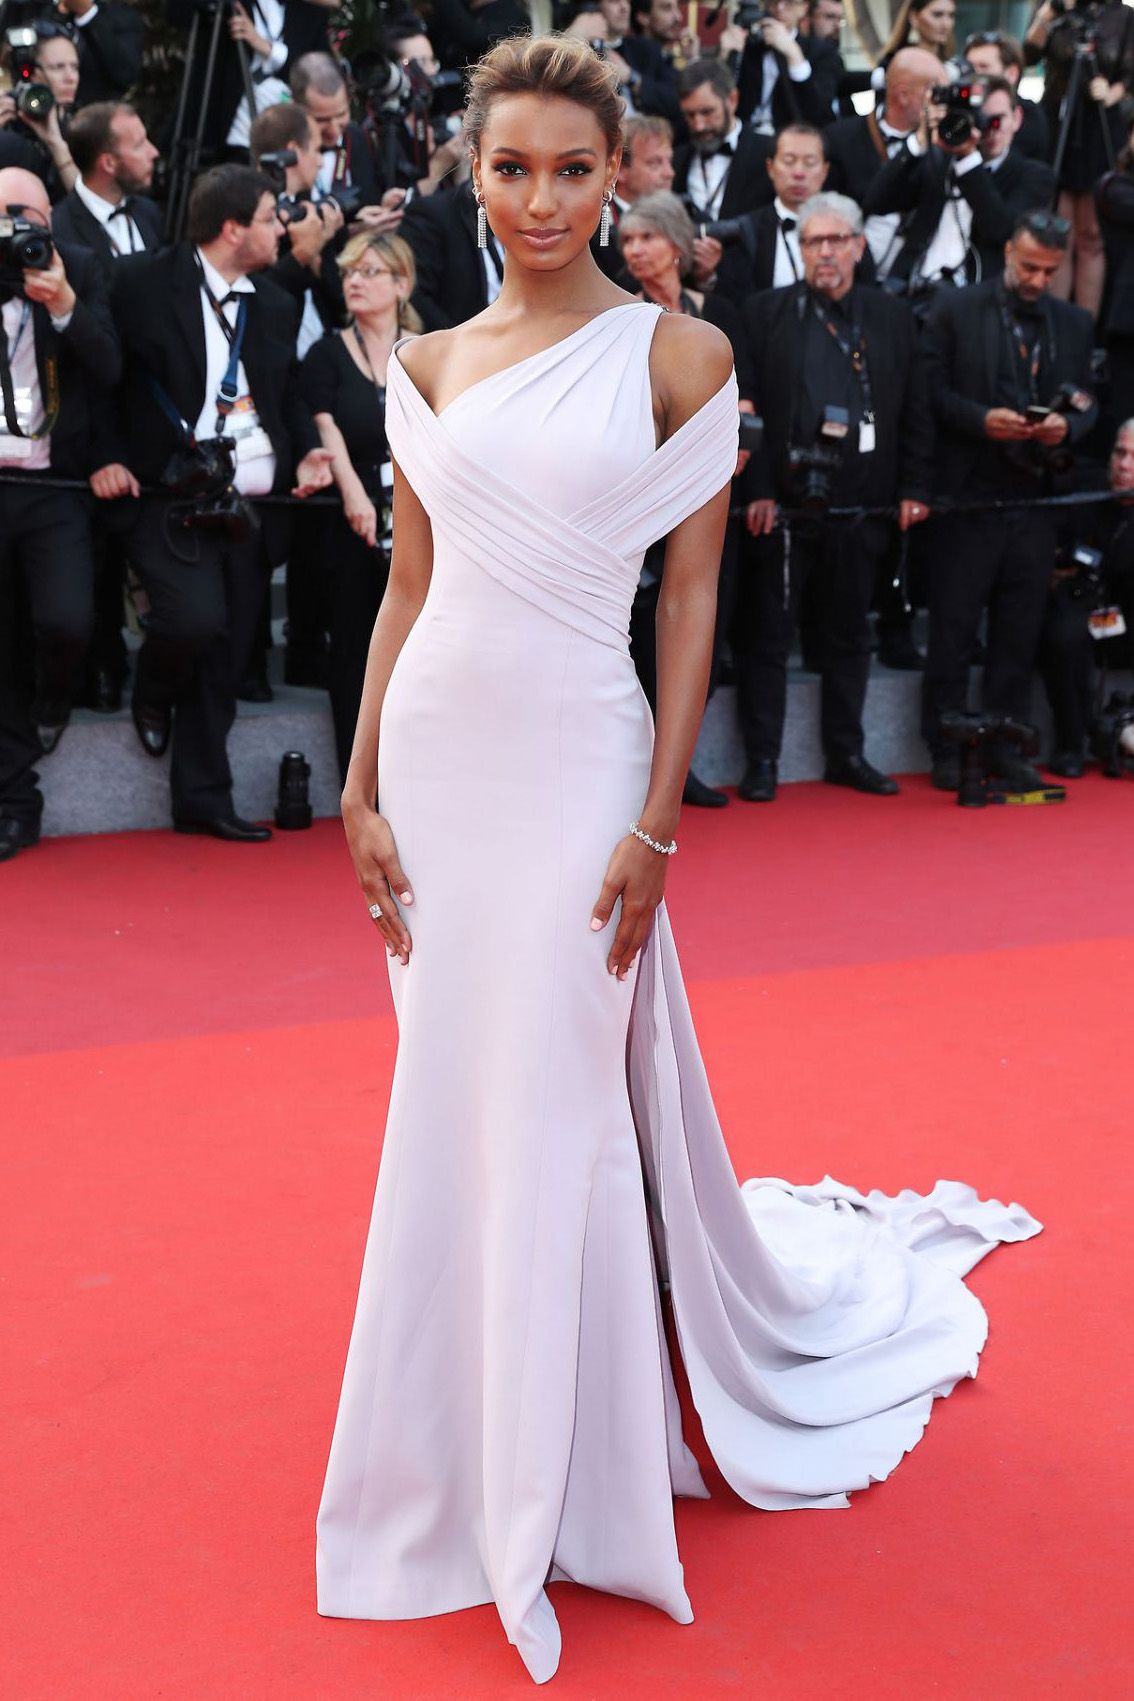 Jasmine Tookes The Beguiled Cannes Film Festival